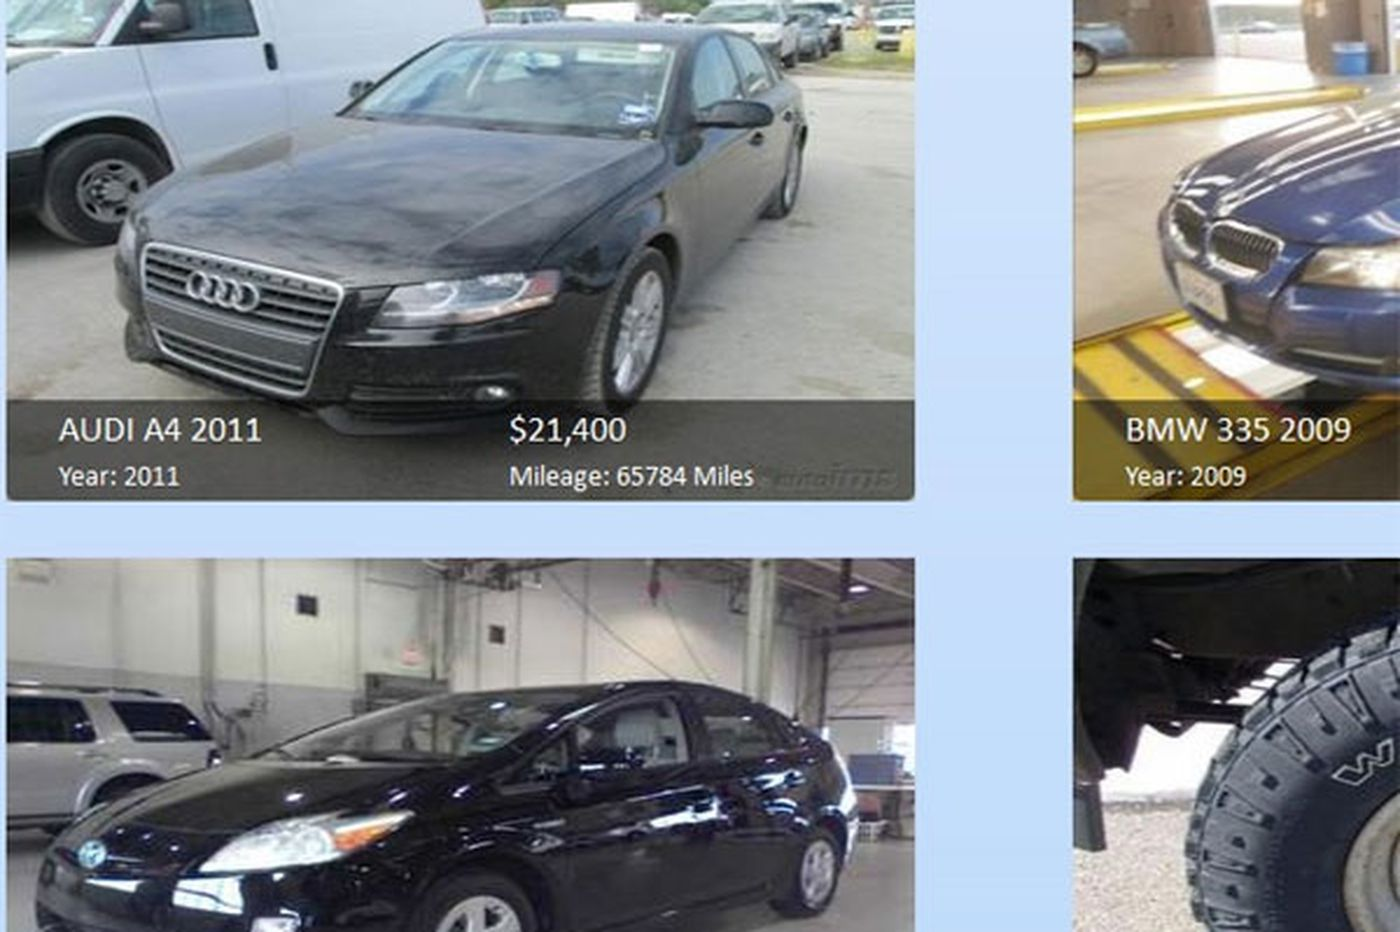 PhillyInc: Their used-car start-up site is a winner